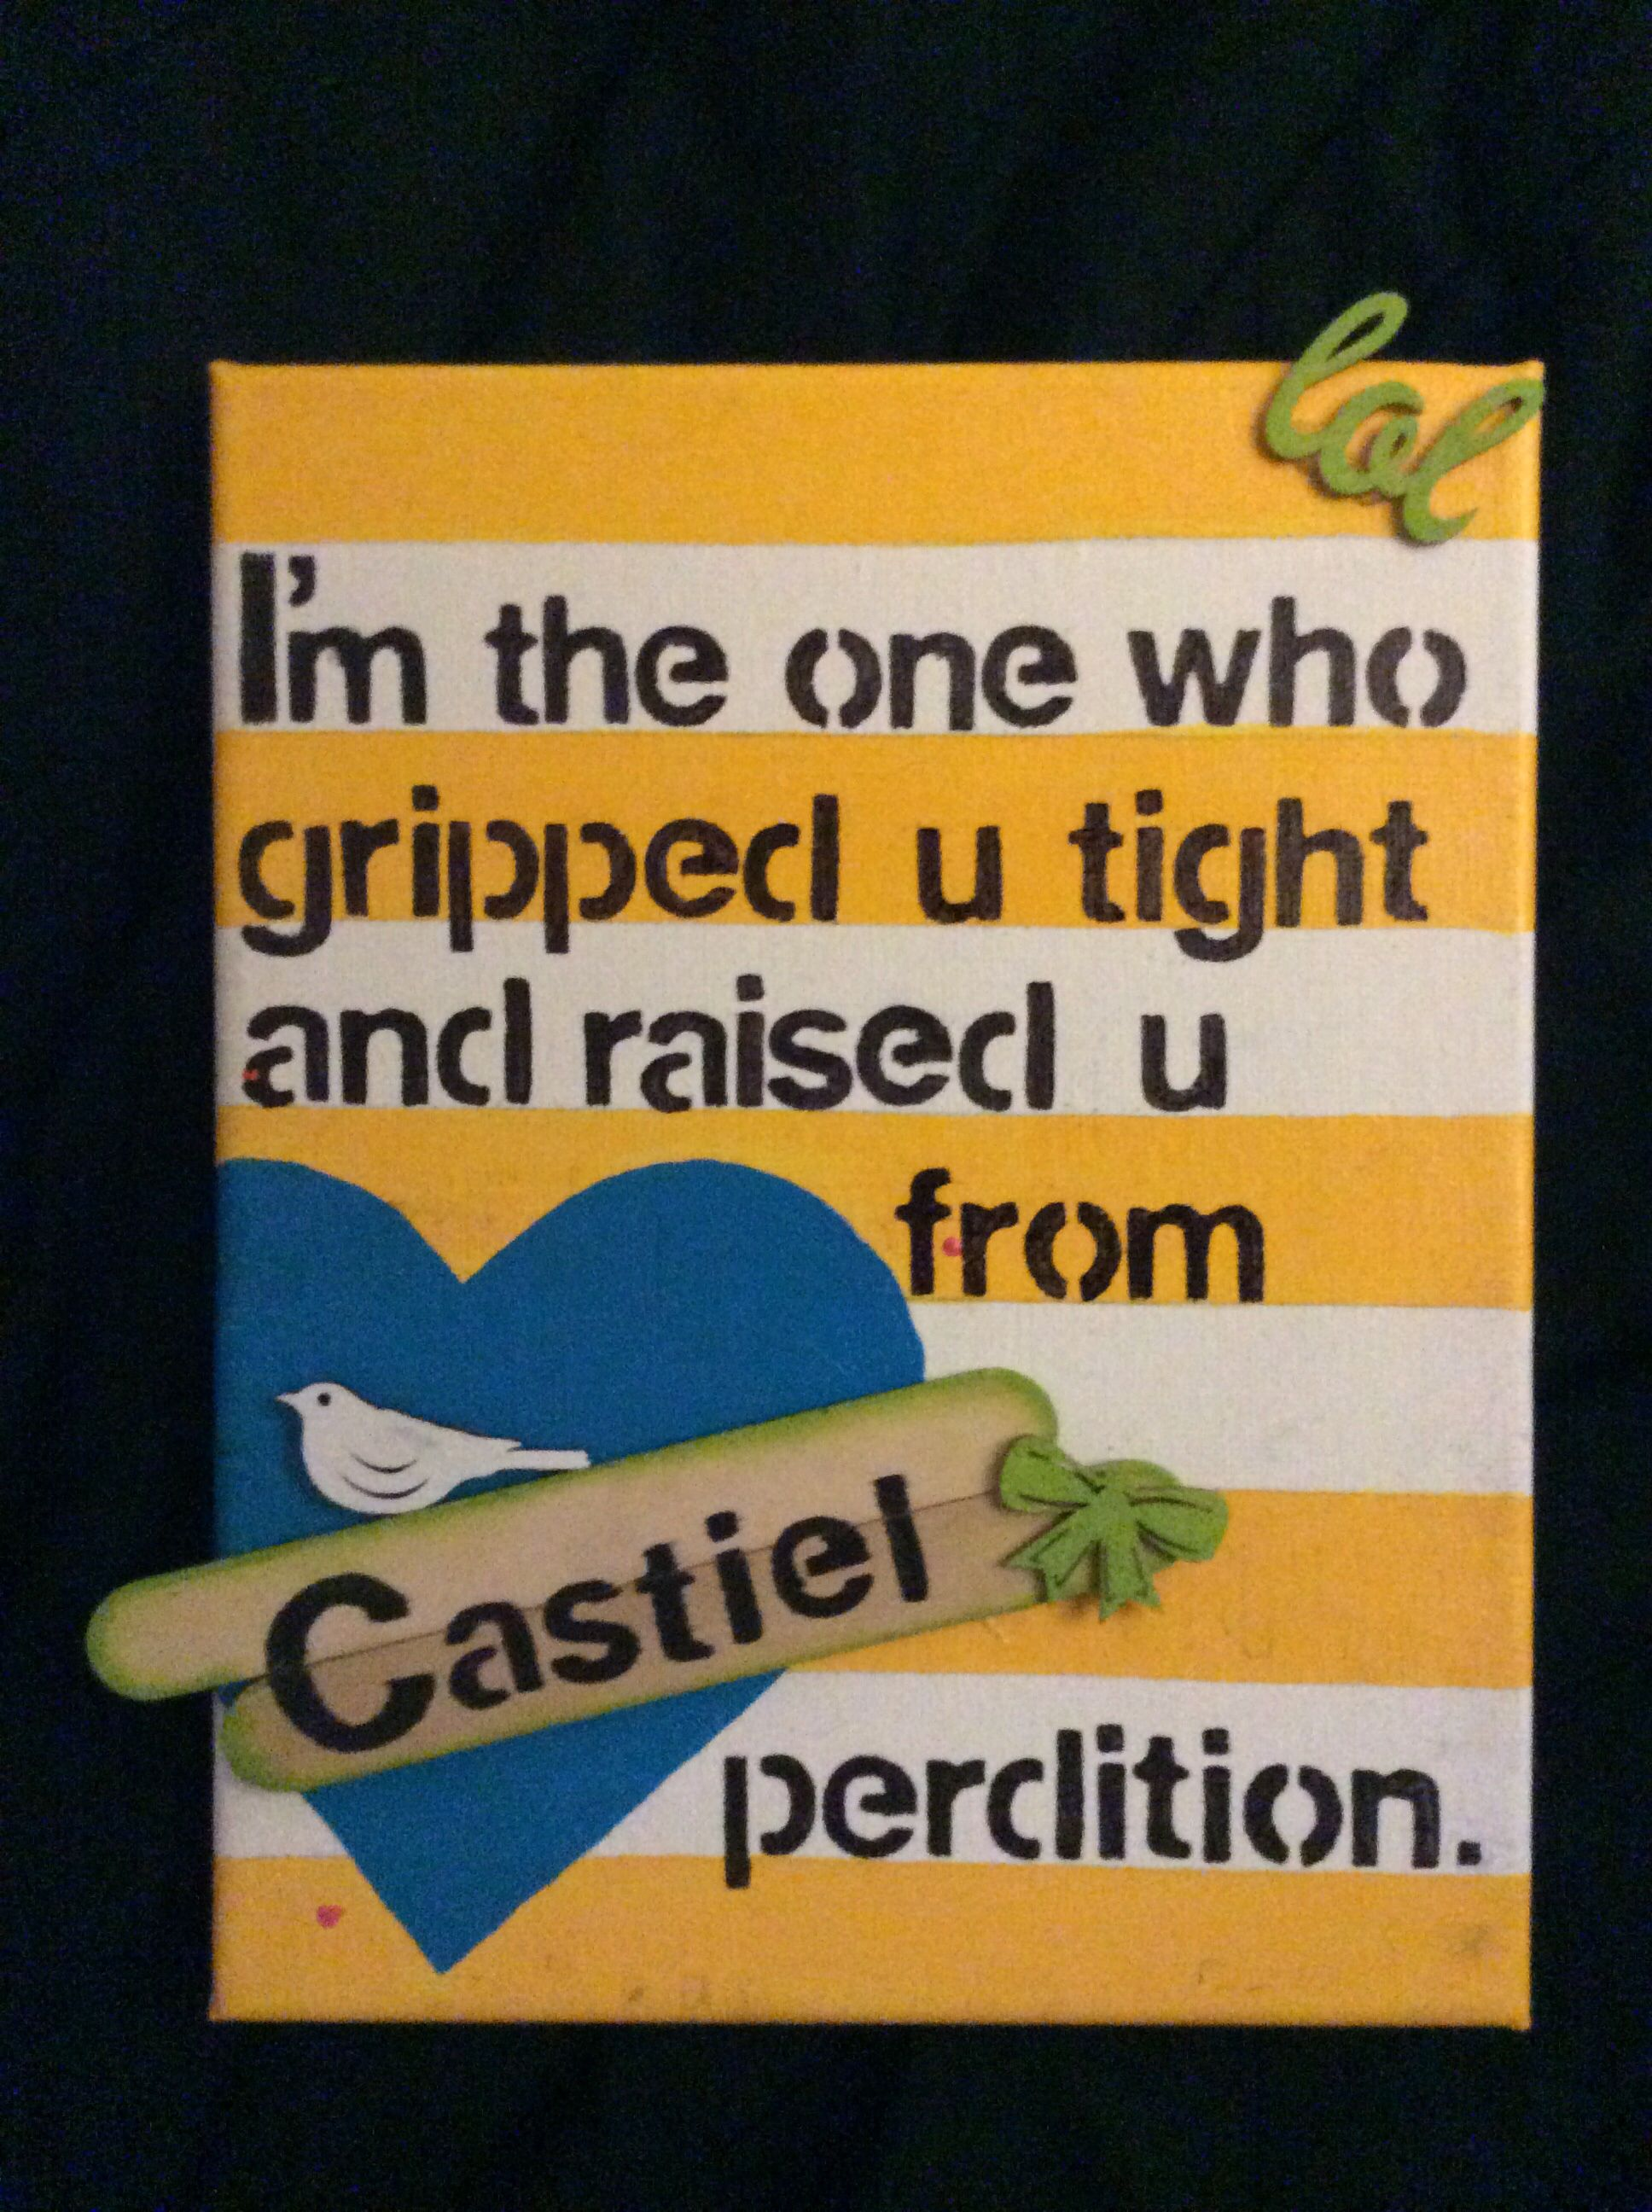 DIY Castiel quote canvas painting from the TV show